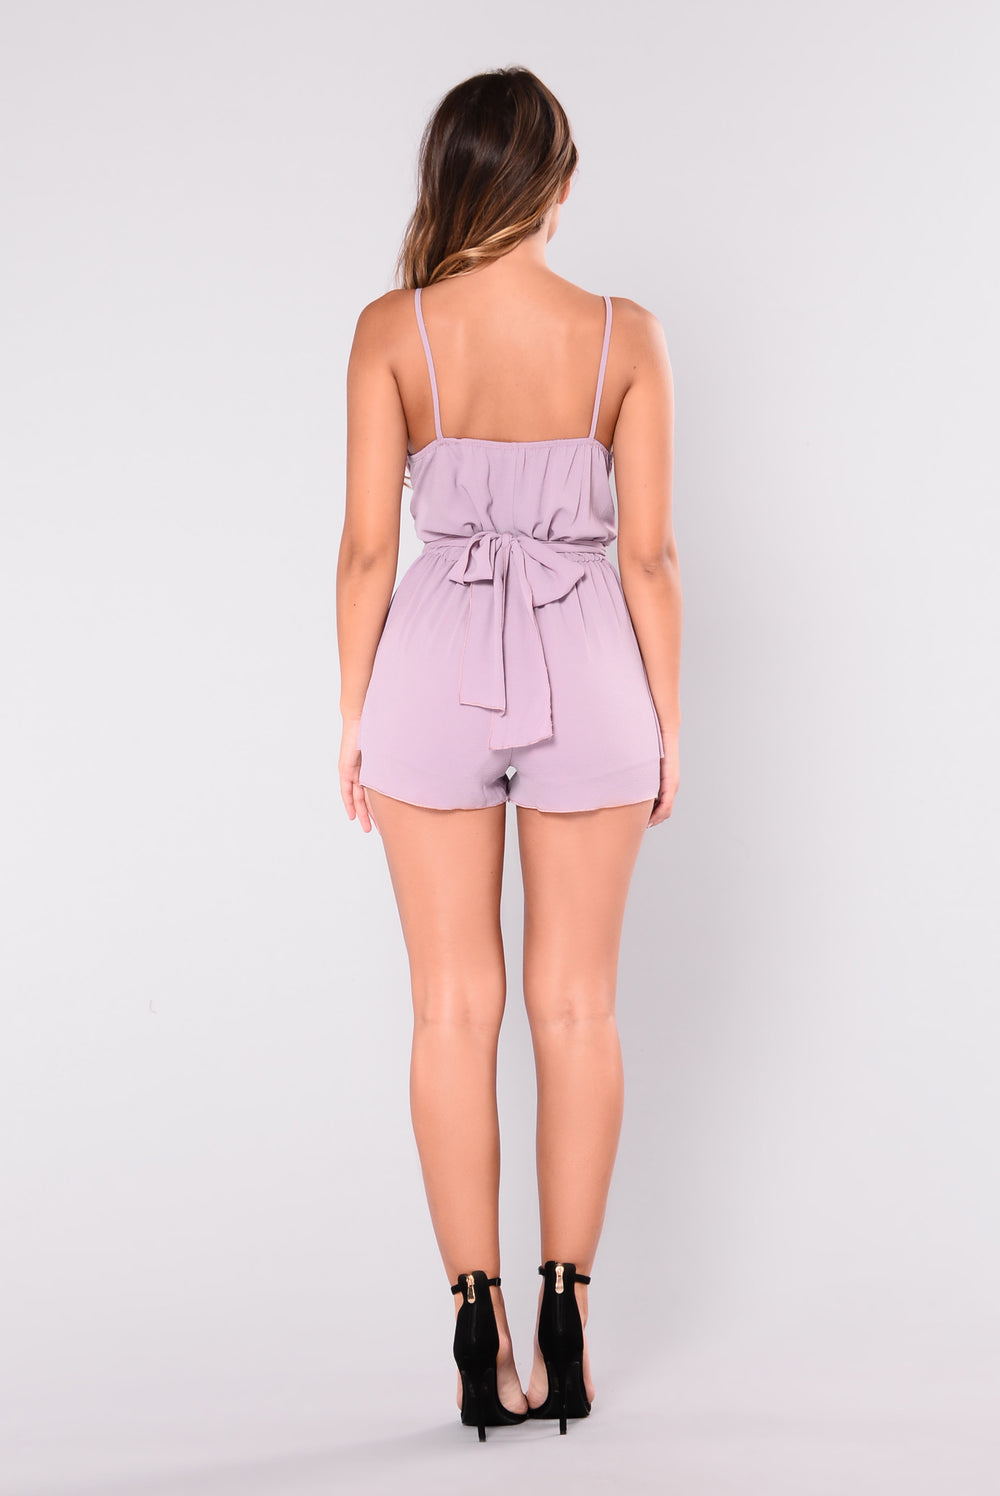 Player Hater Romper - Dusty Purple